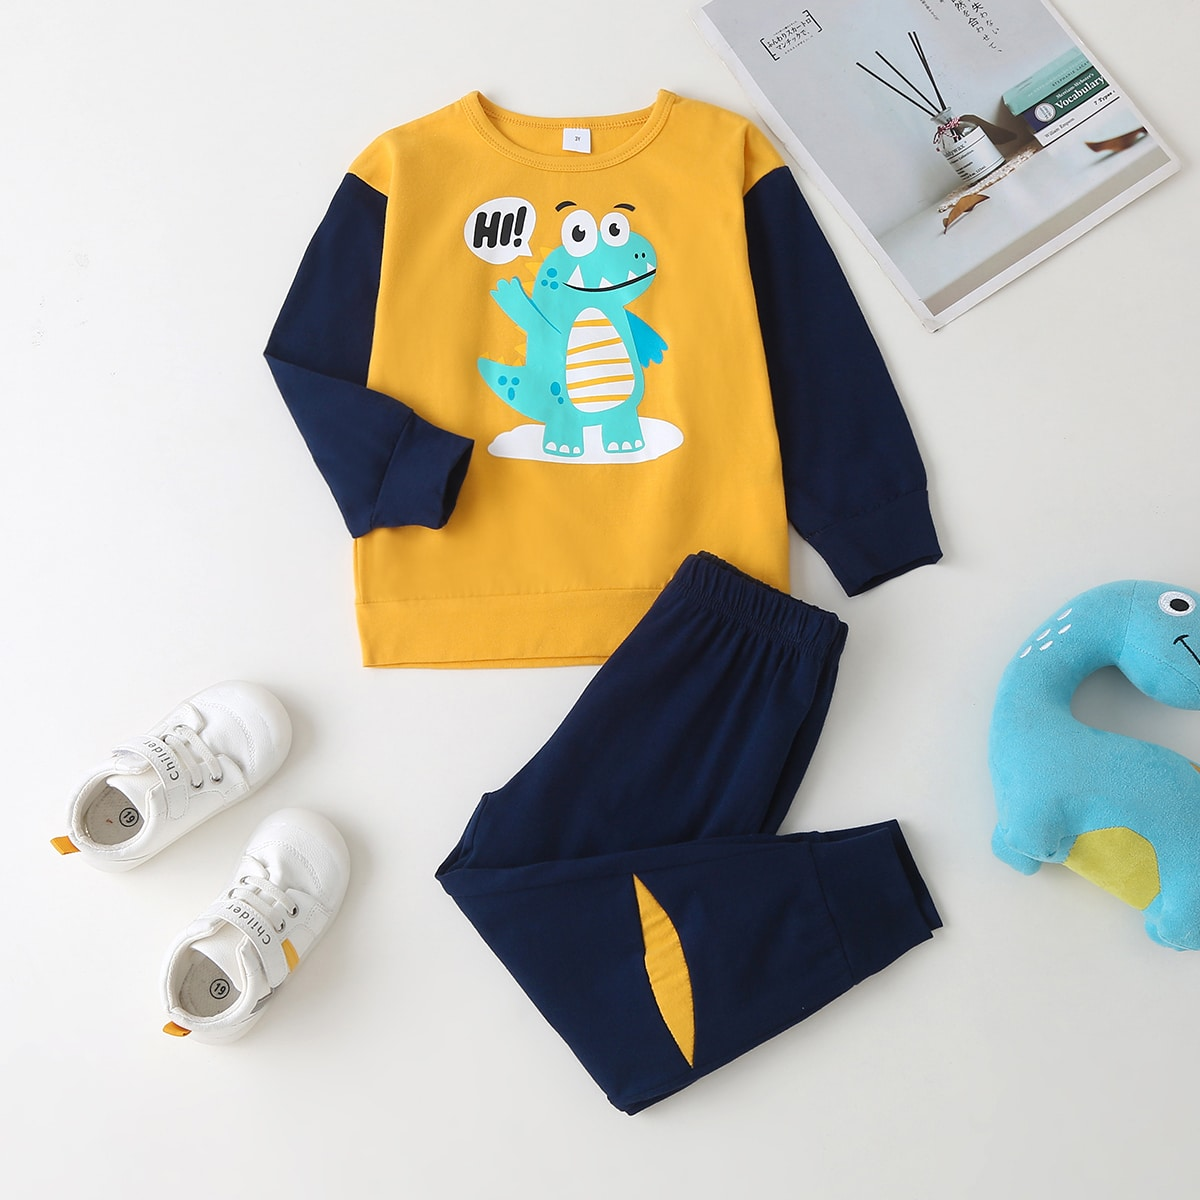 Toddler Boys Cartoon Graphic Sweatshirt With Patched Joggers